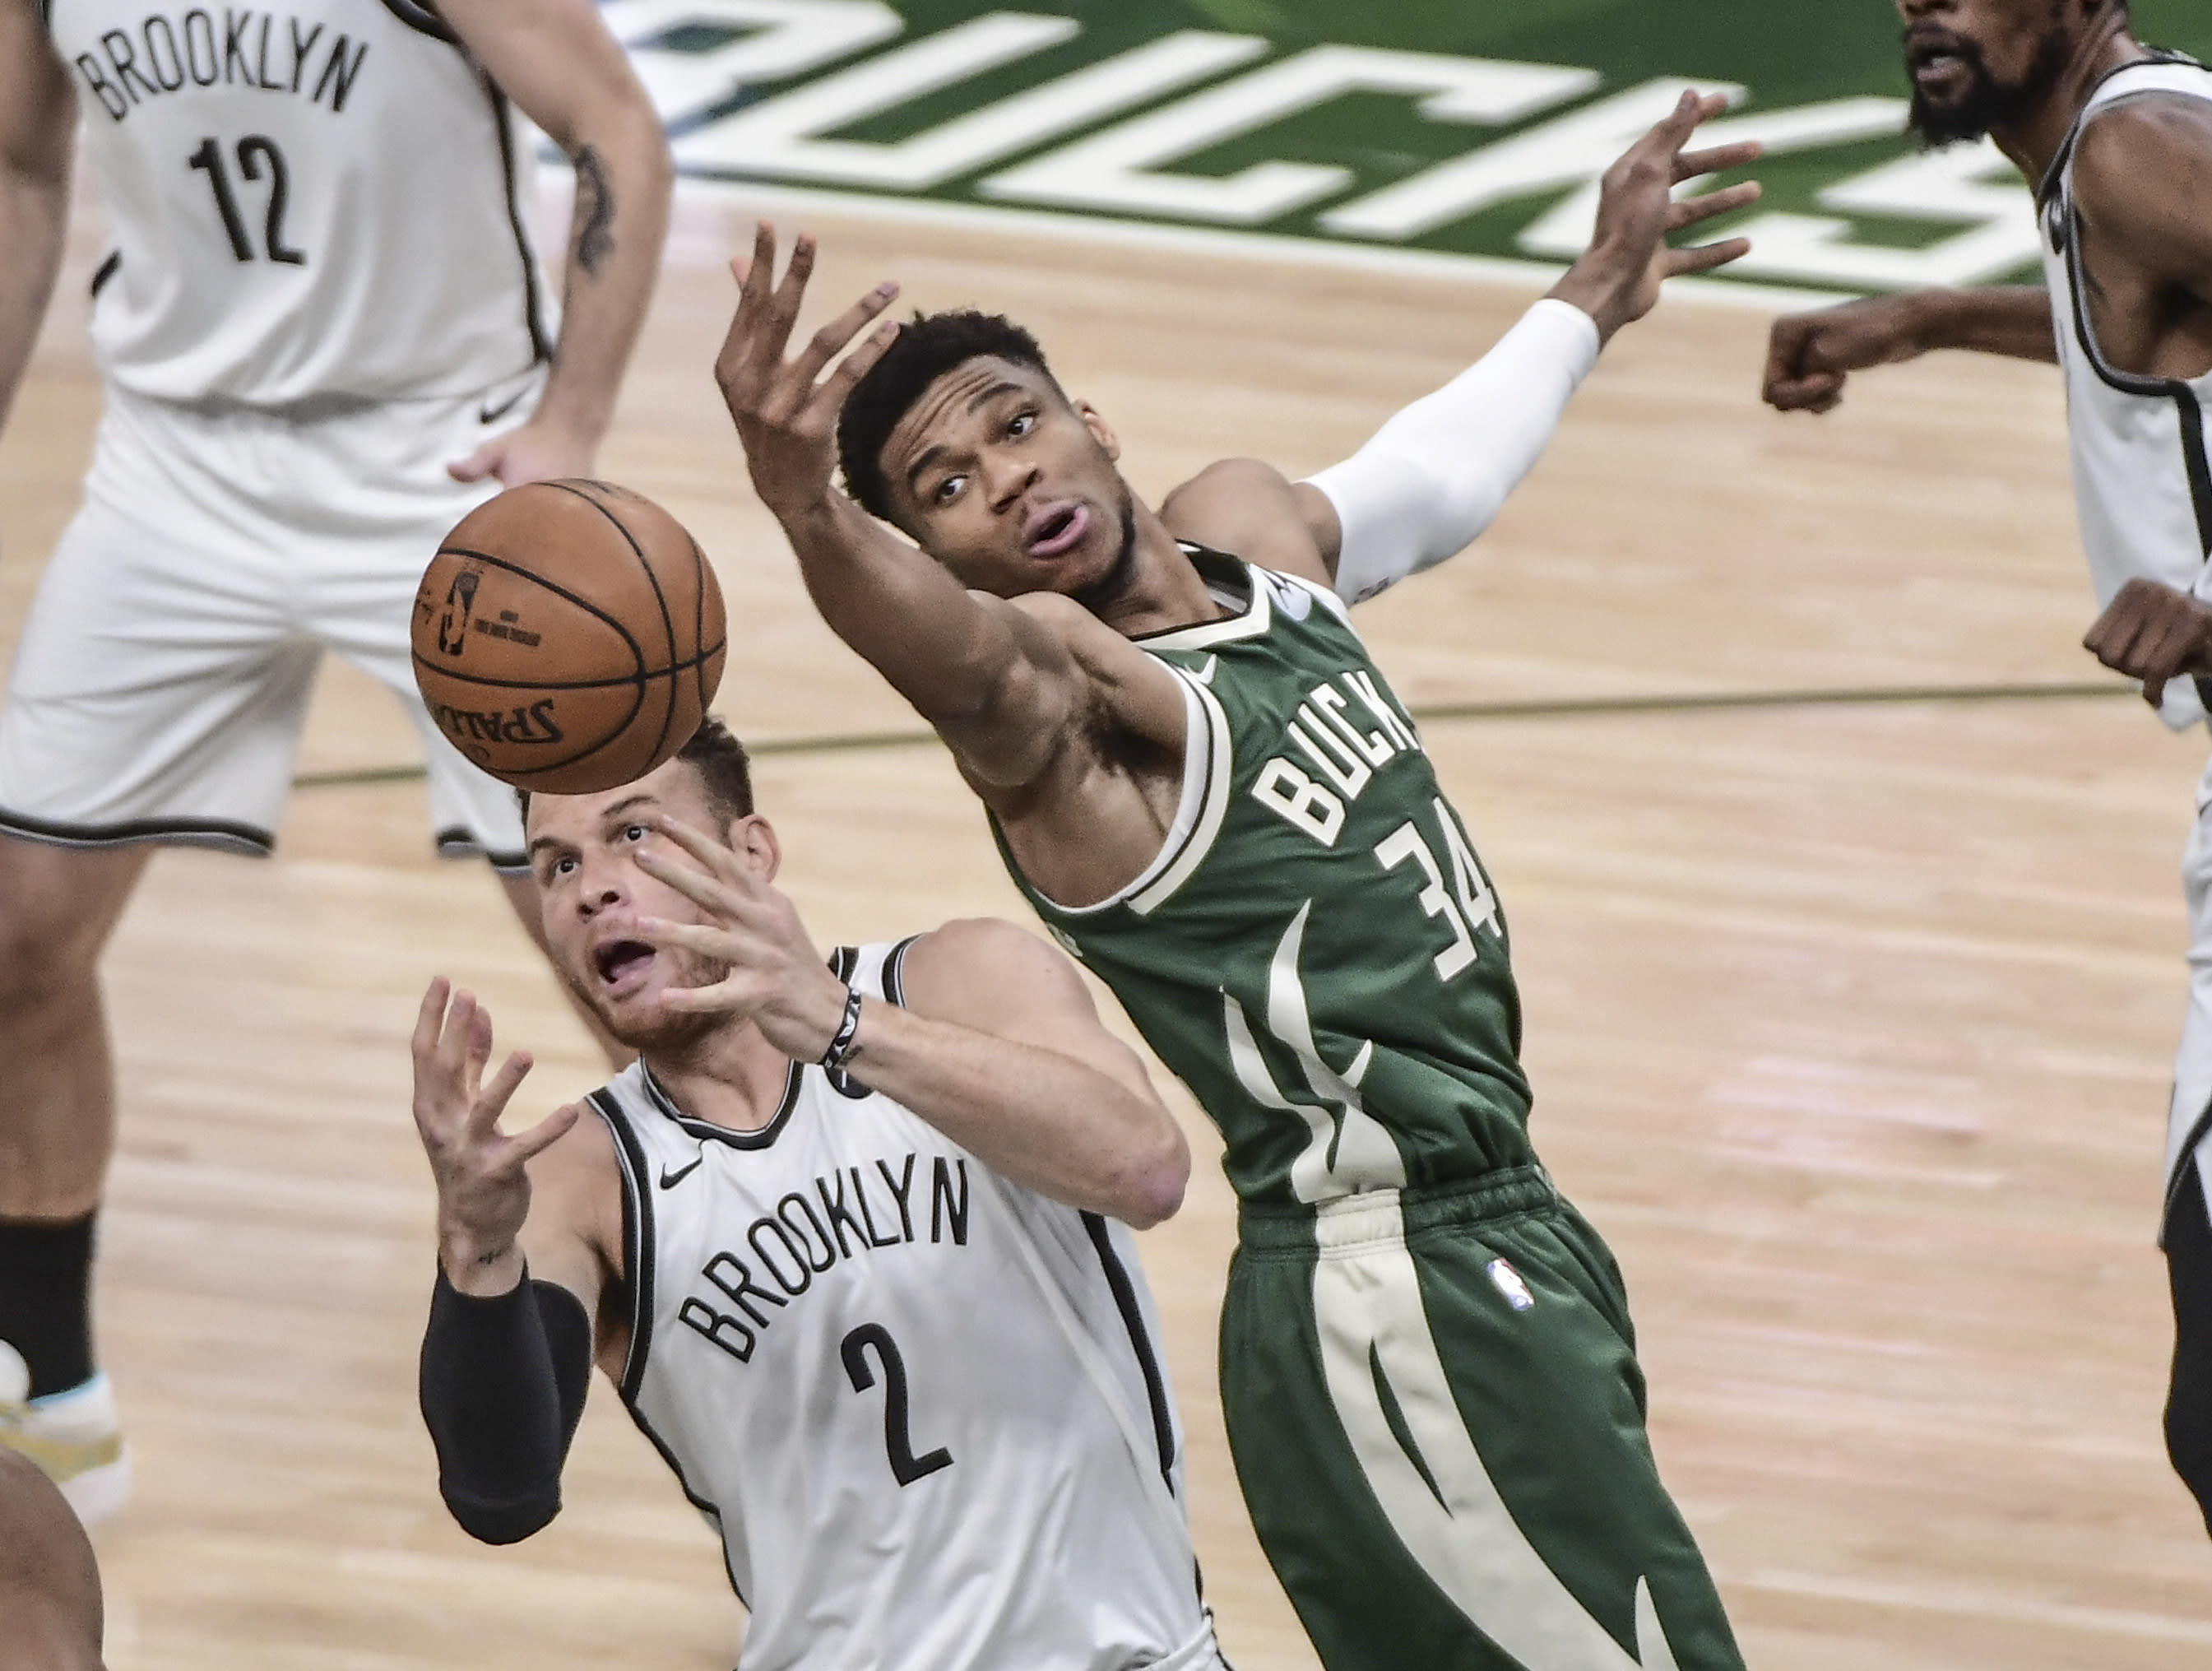 Yannis Antocompo, Milwaukee Bucks, vs. Blake Griffin, Los Angeles Clippers